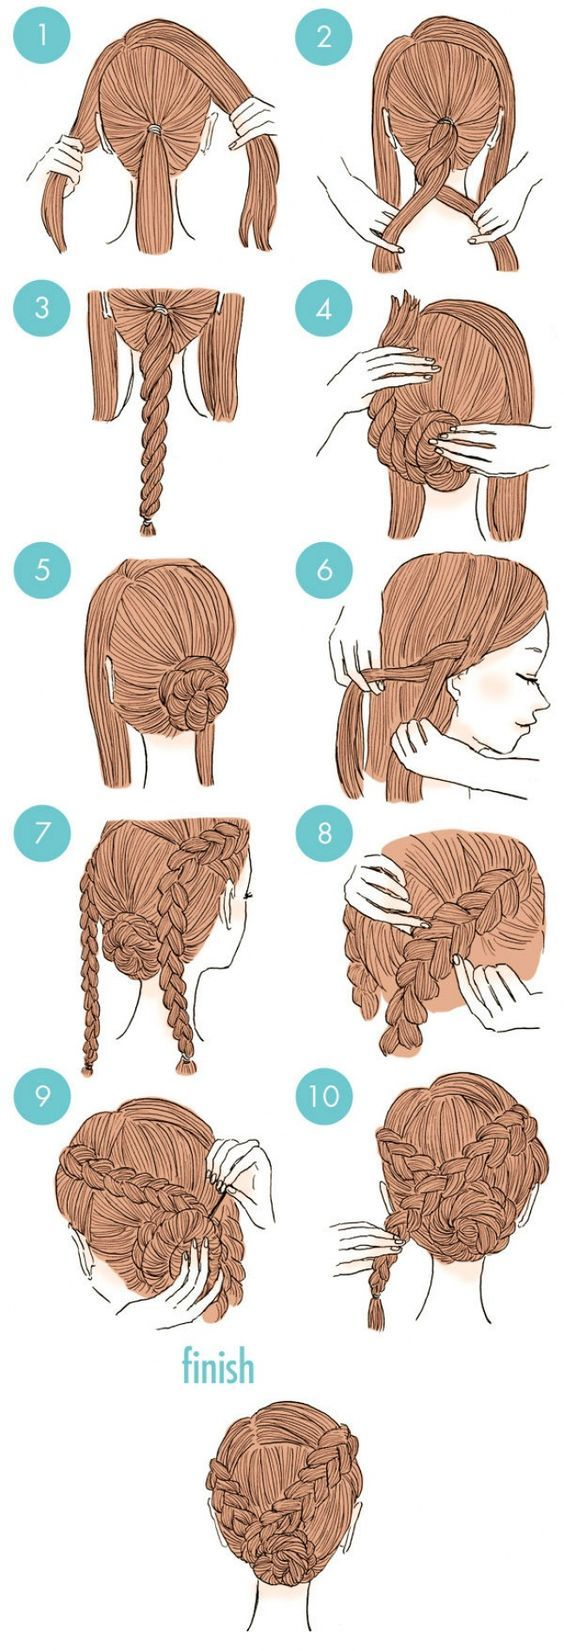 65 easy and cute hairstyles that can be done in just a few